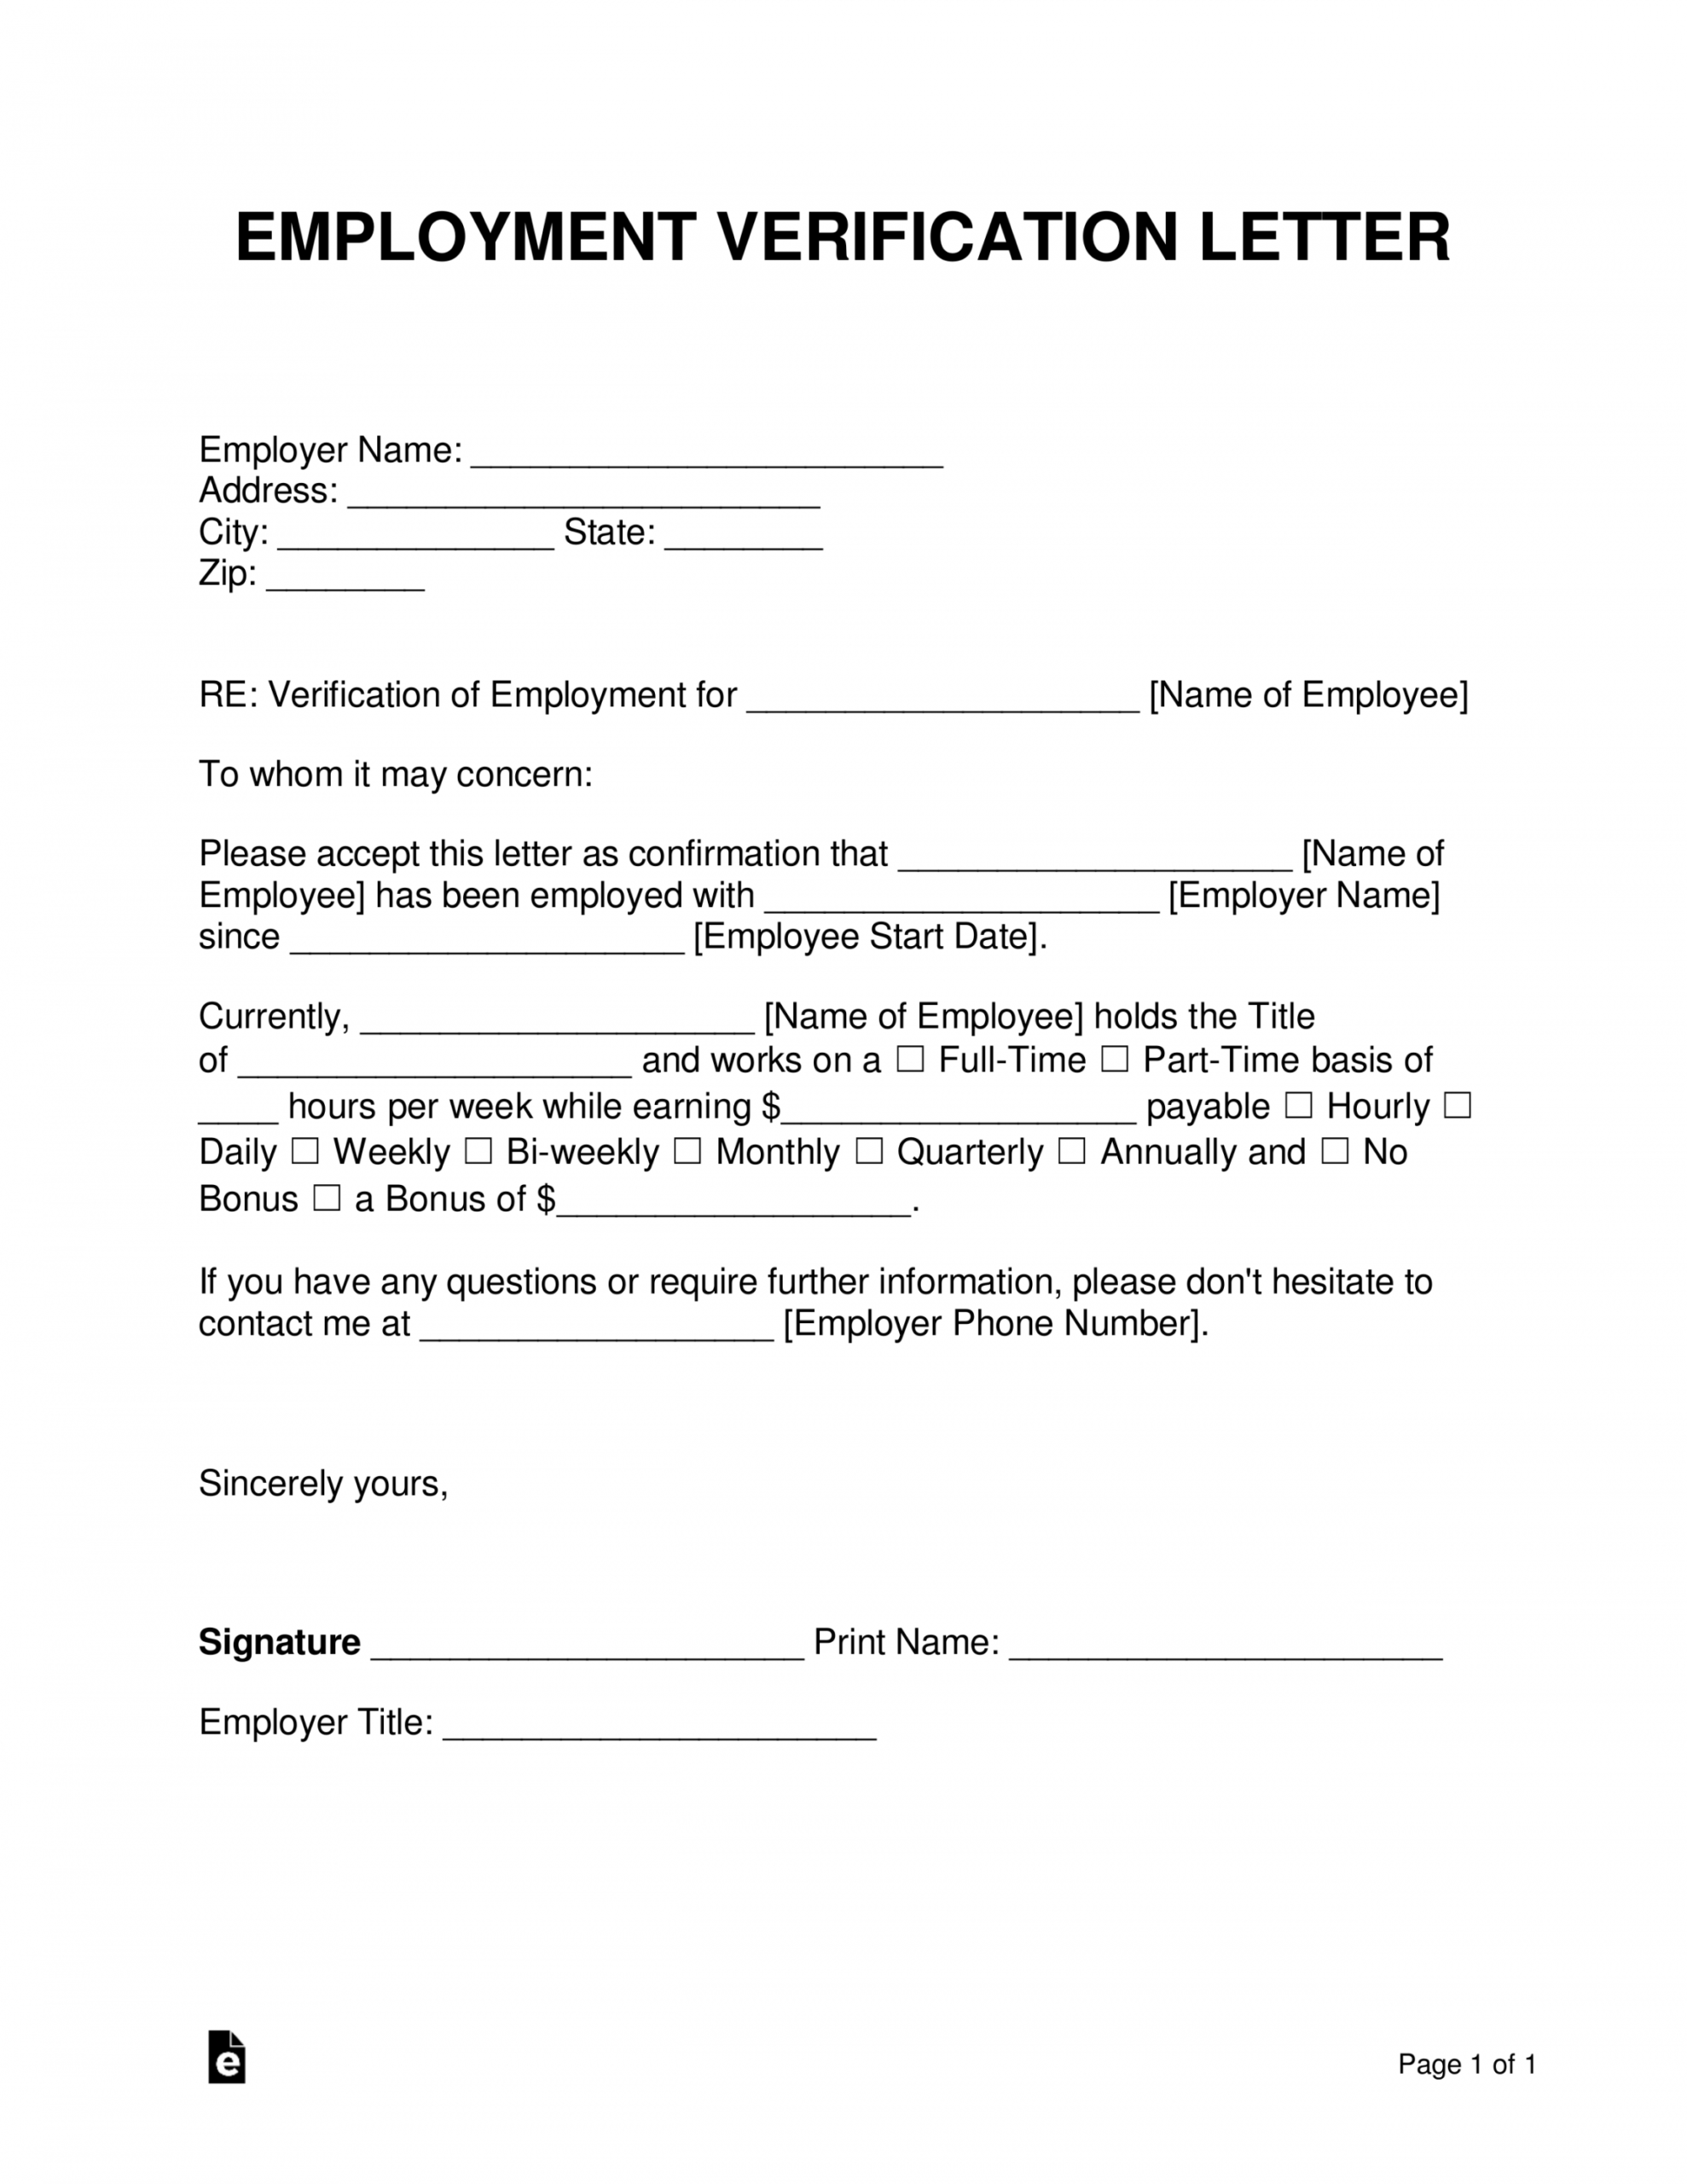 costum income verification letter for self employed  sample